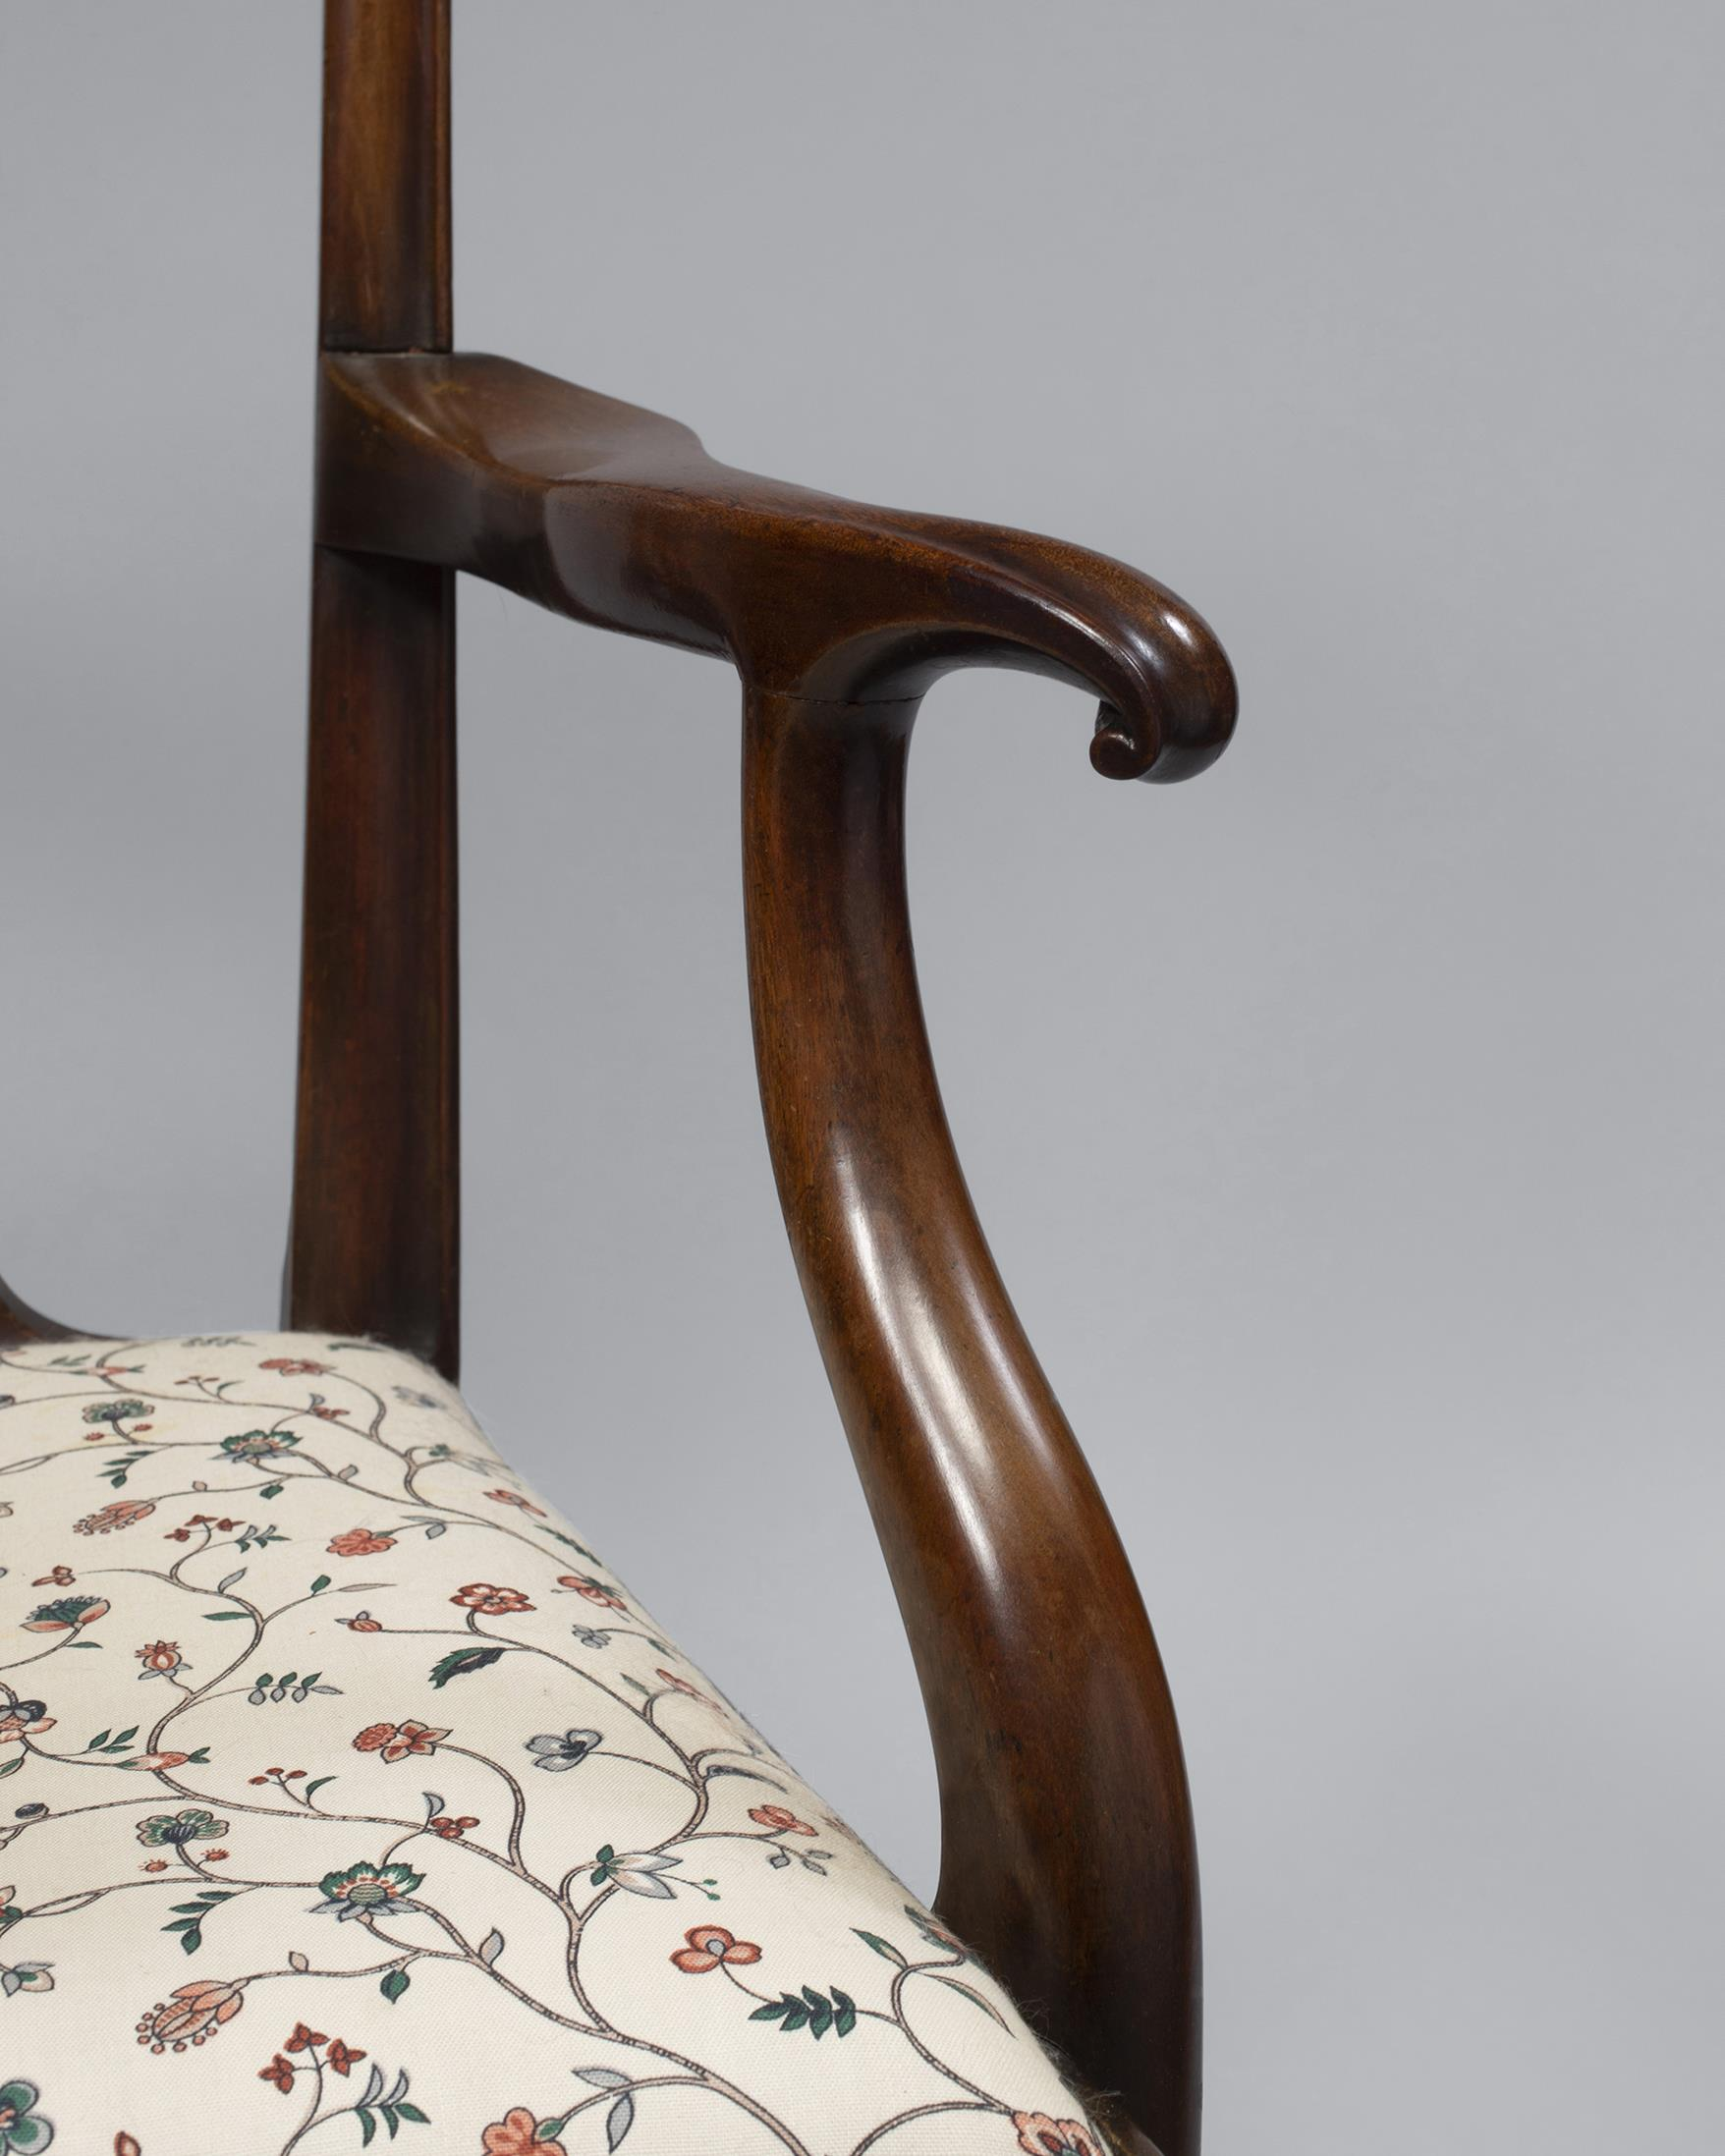 Rare Chippendale Mahogany Open Arm Chair Made and Stamped by Cabinet Maker, William Long Close-up